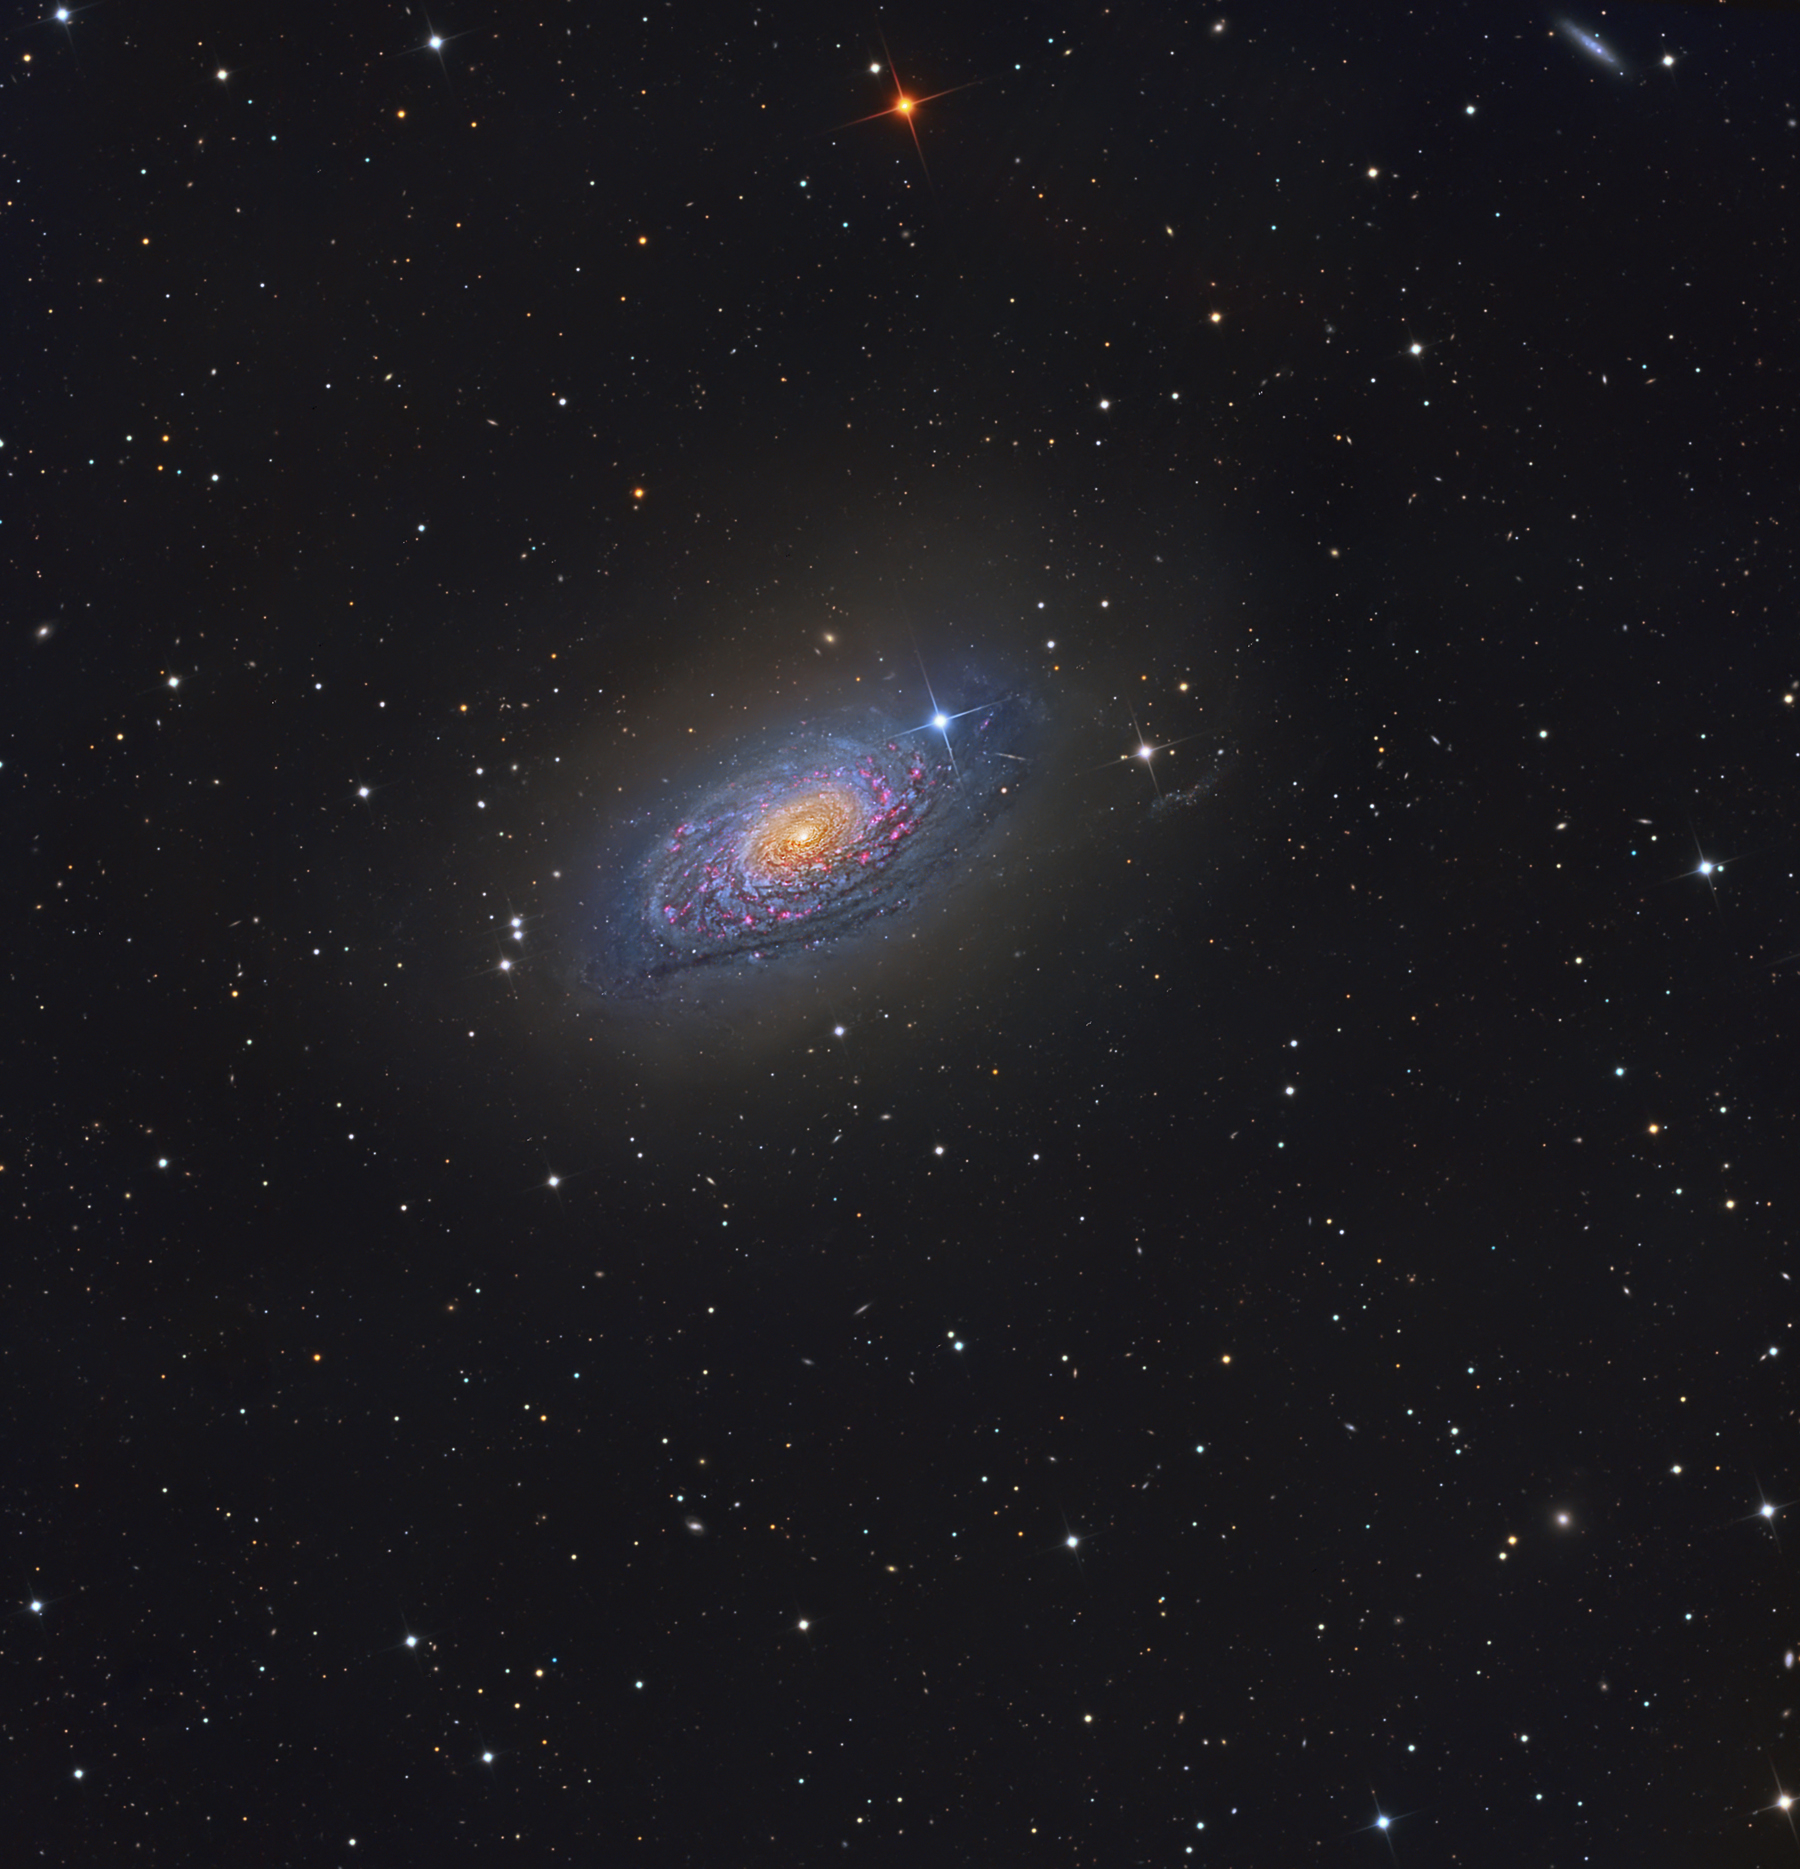 M63-LHaRGB Bill Synder